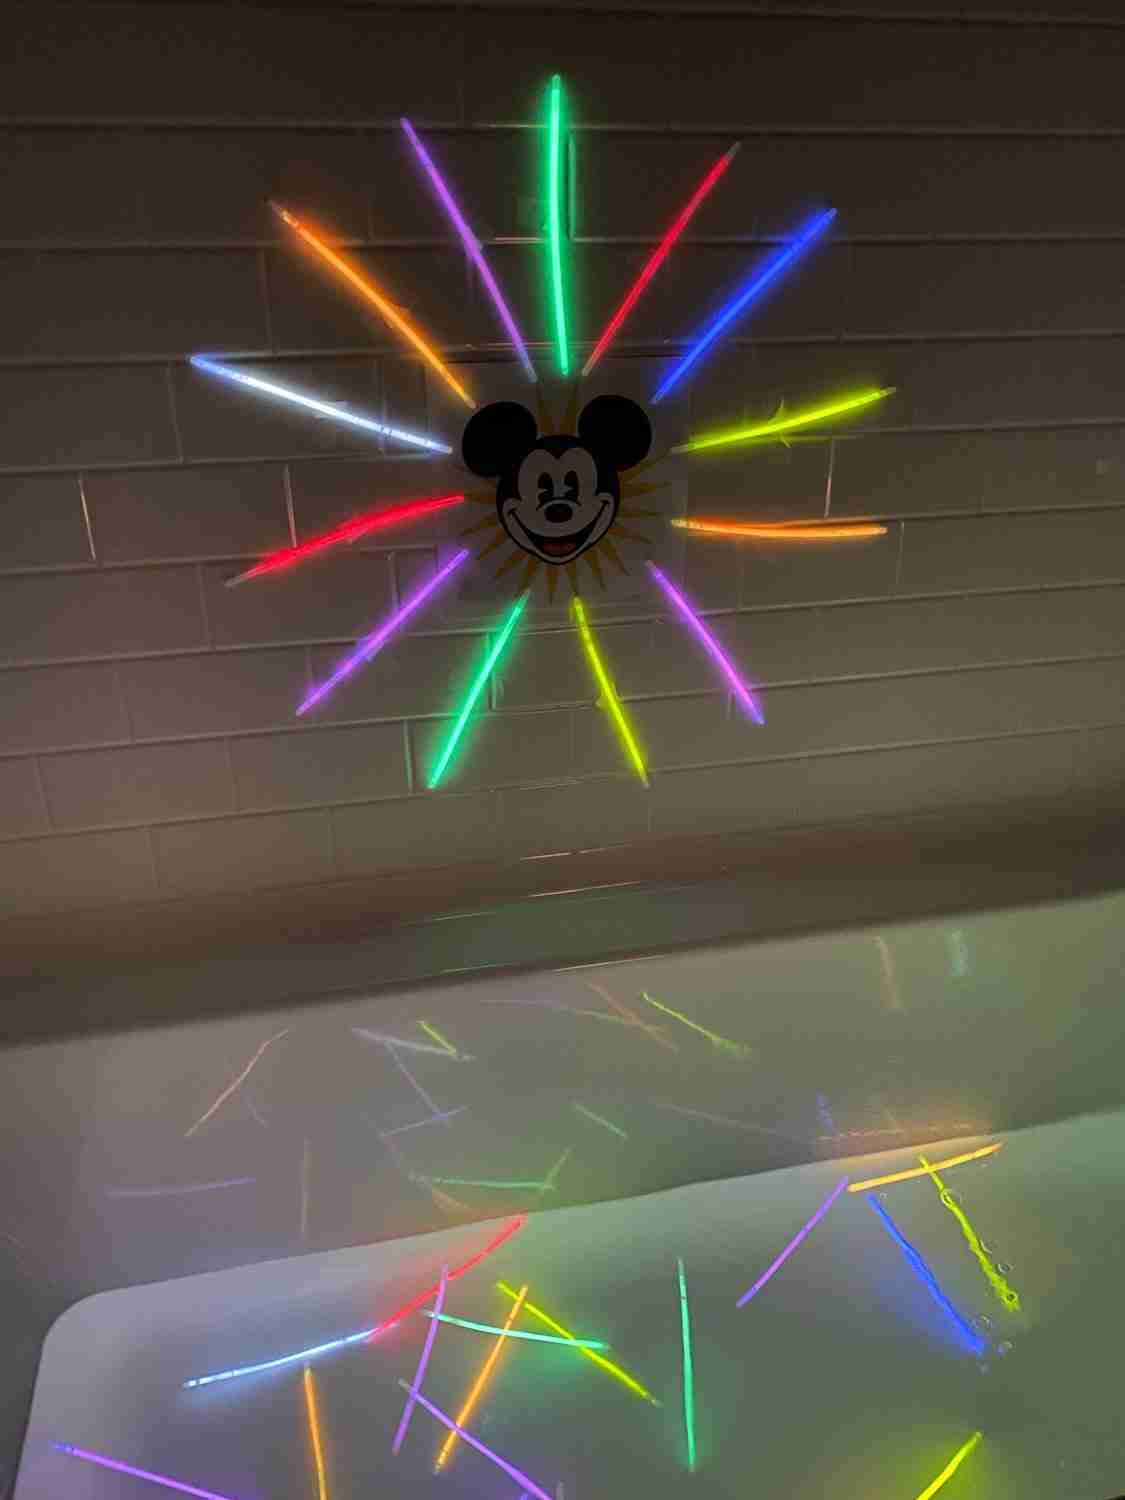 Glow sticks in bath and on wall to replicate World of Color for Disneyland at home